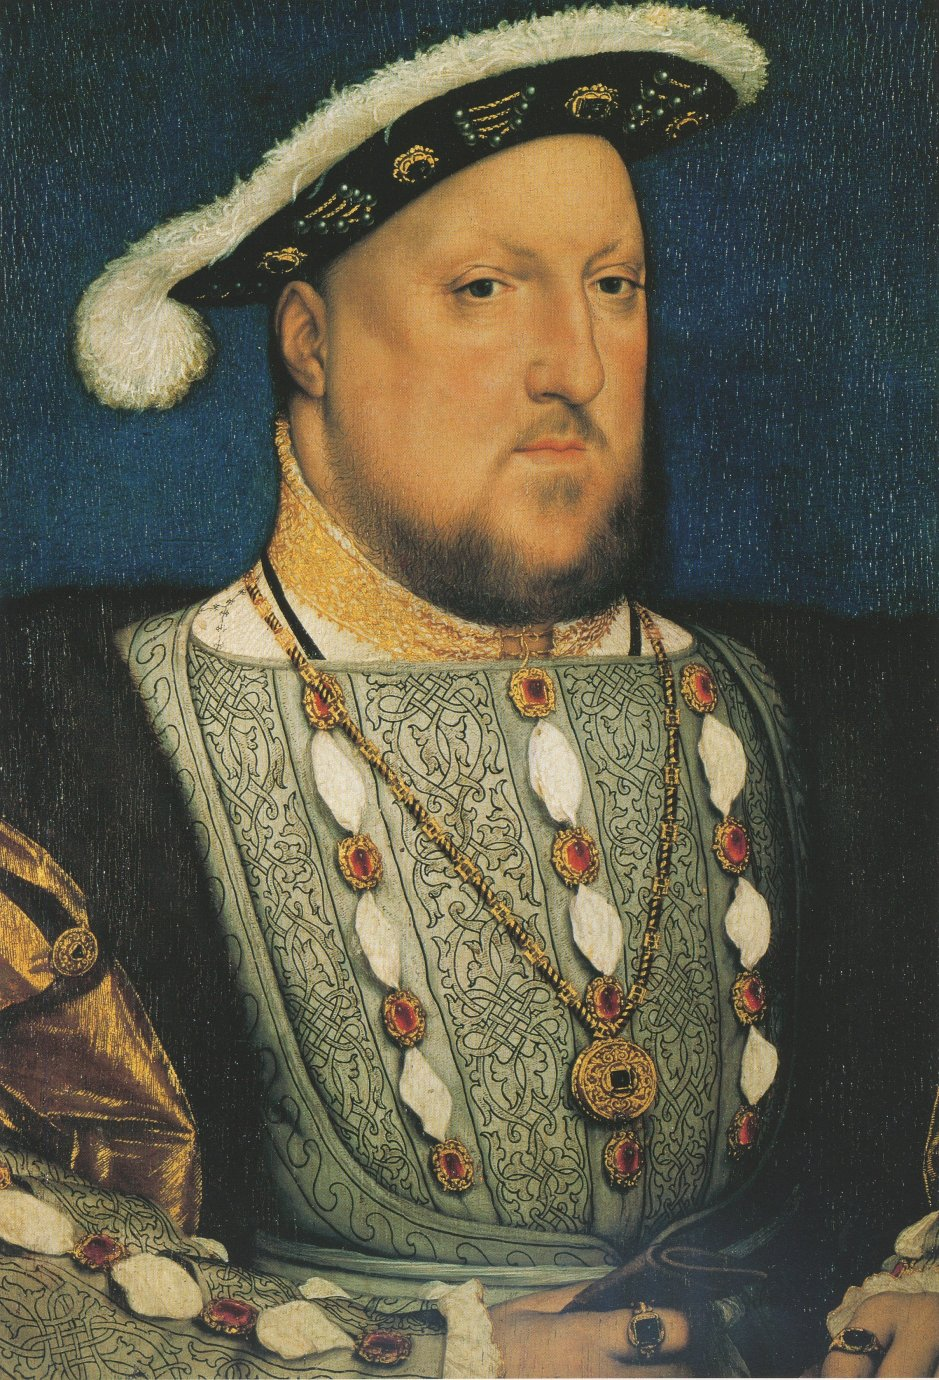 Henry_VIII_of_England,_by_Hans_Holbein_the_Younger